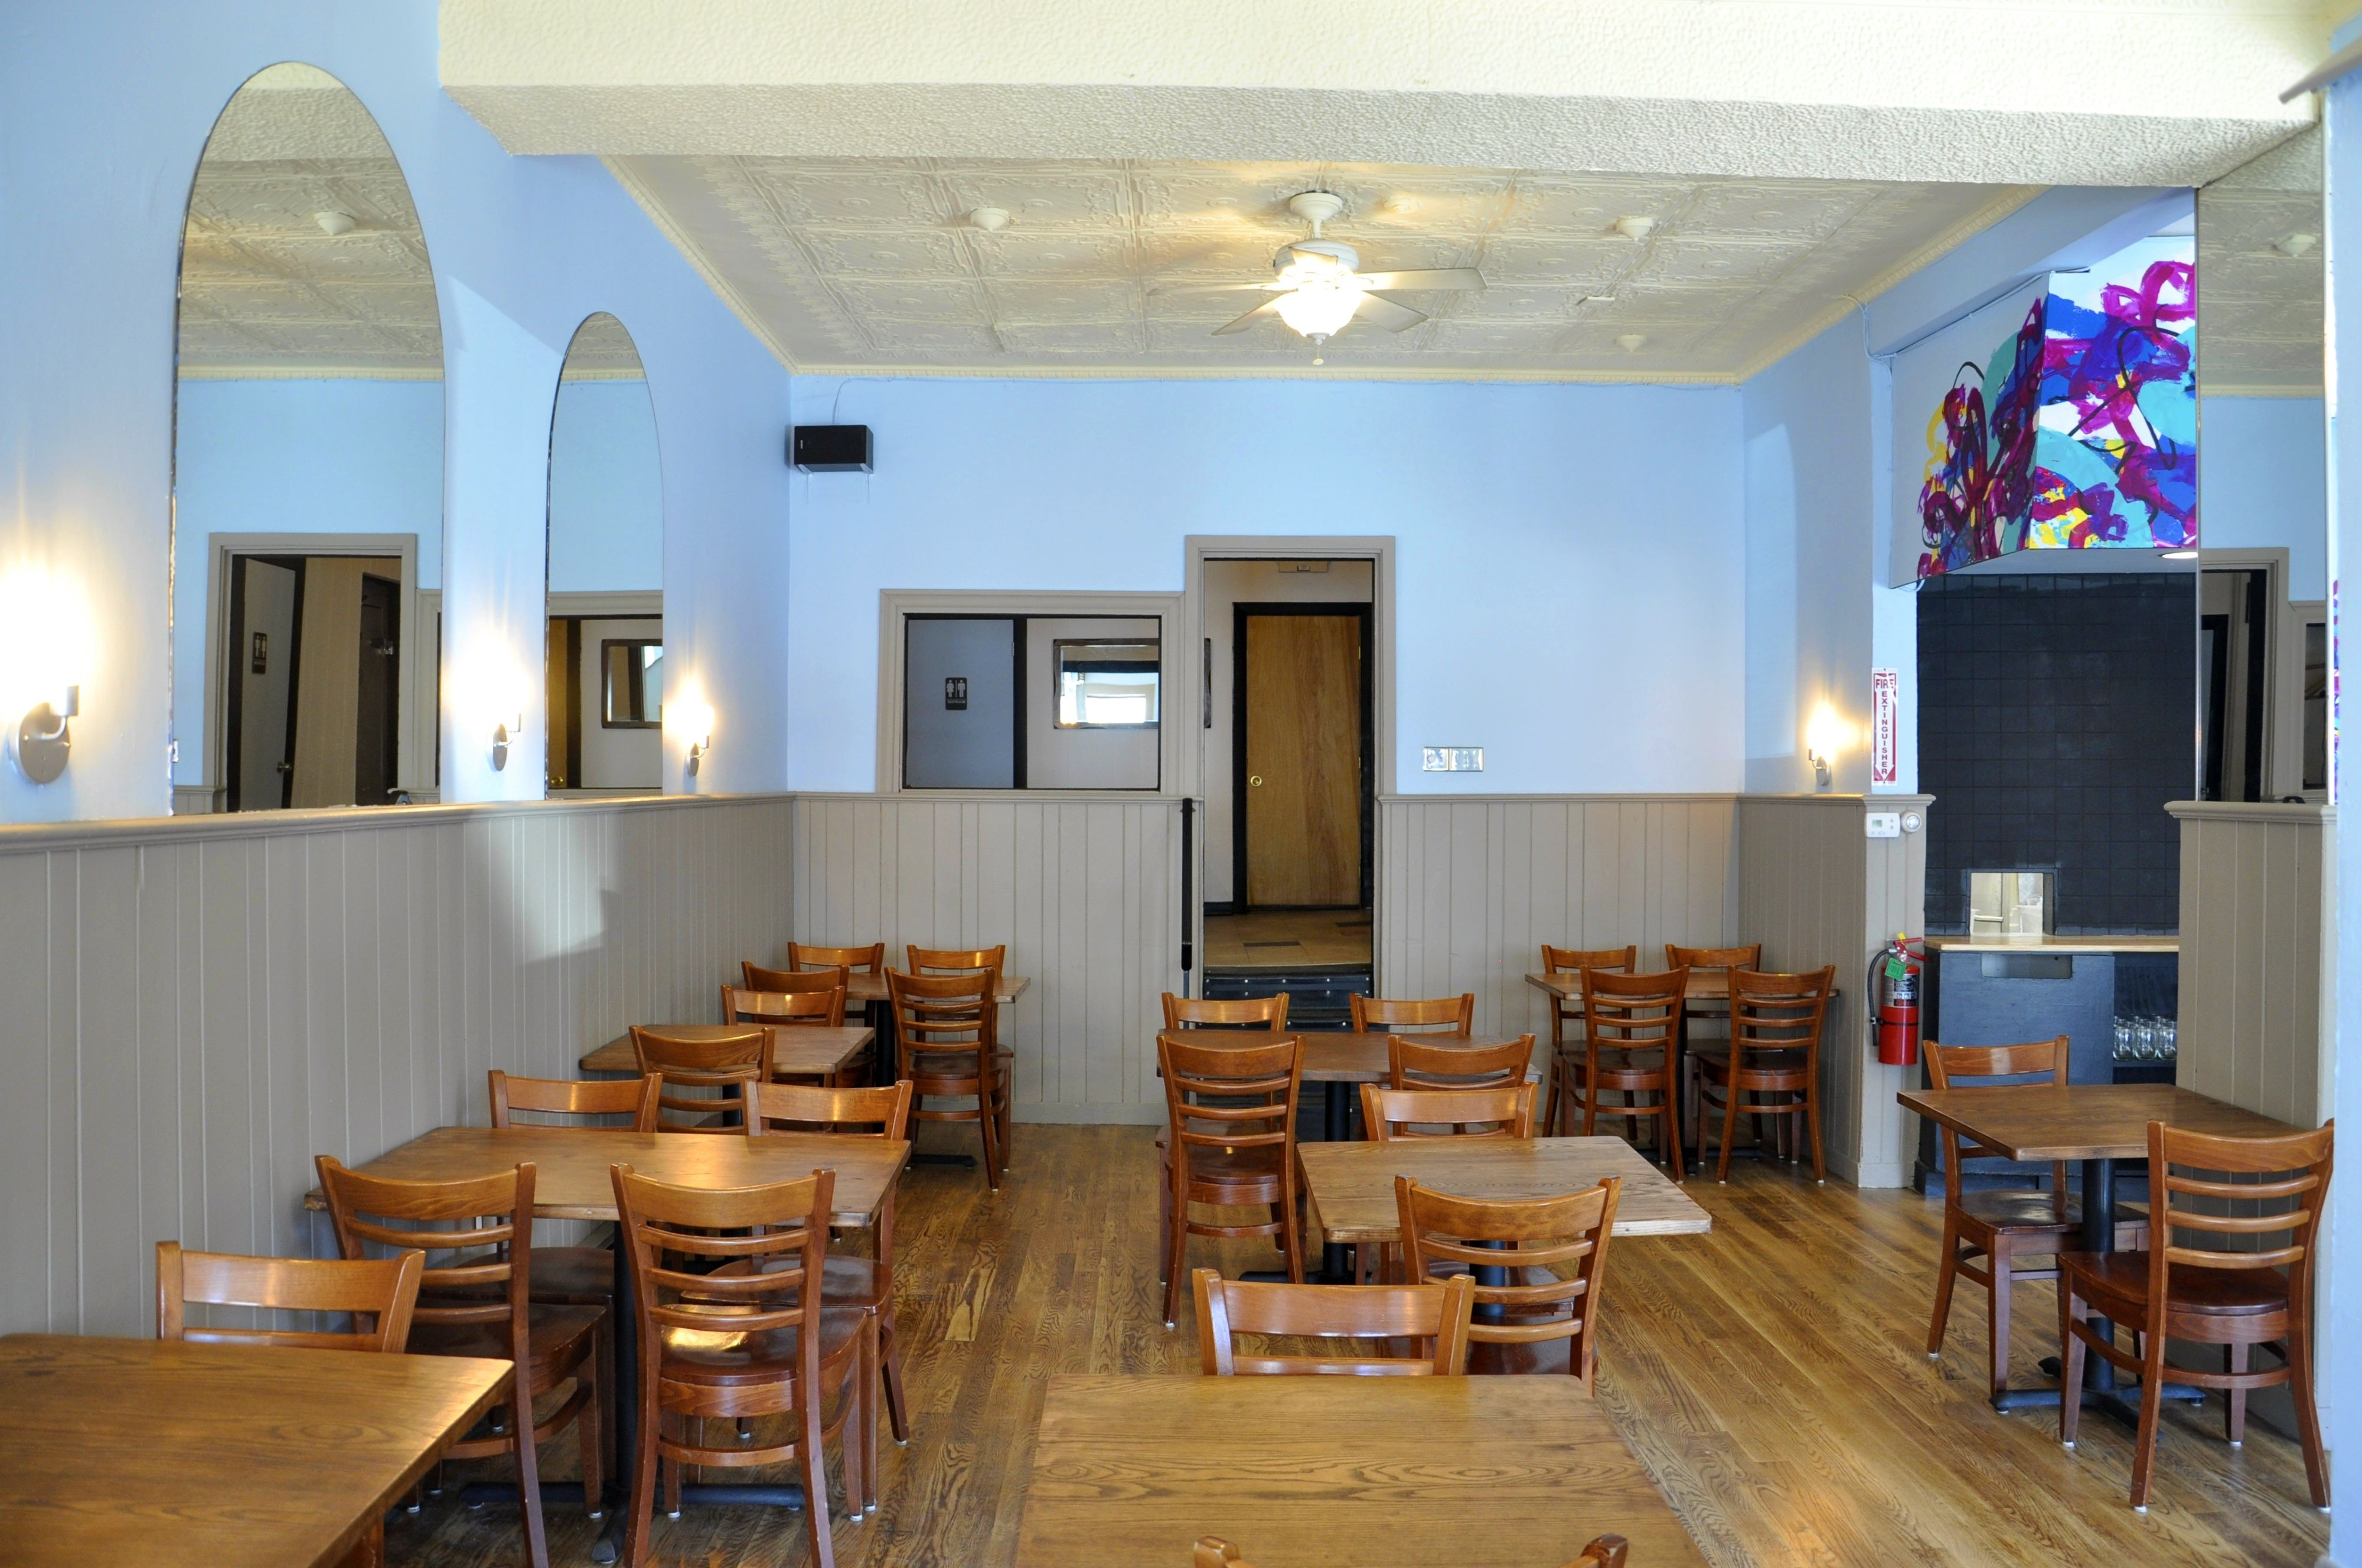 Wide view of a restaurant space with wooden floors and tables, tan-colored wood paneling on the lower half of the walls and light blue-painted walls above